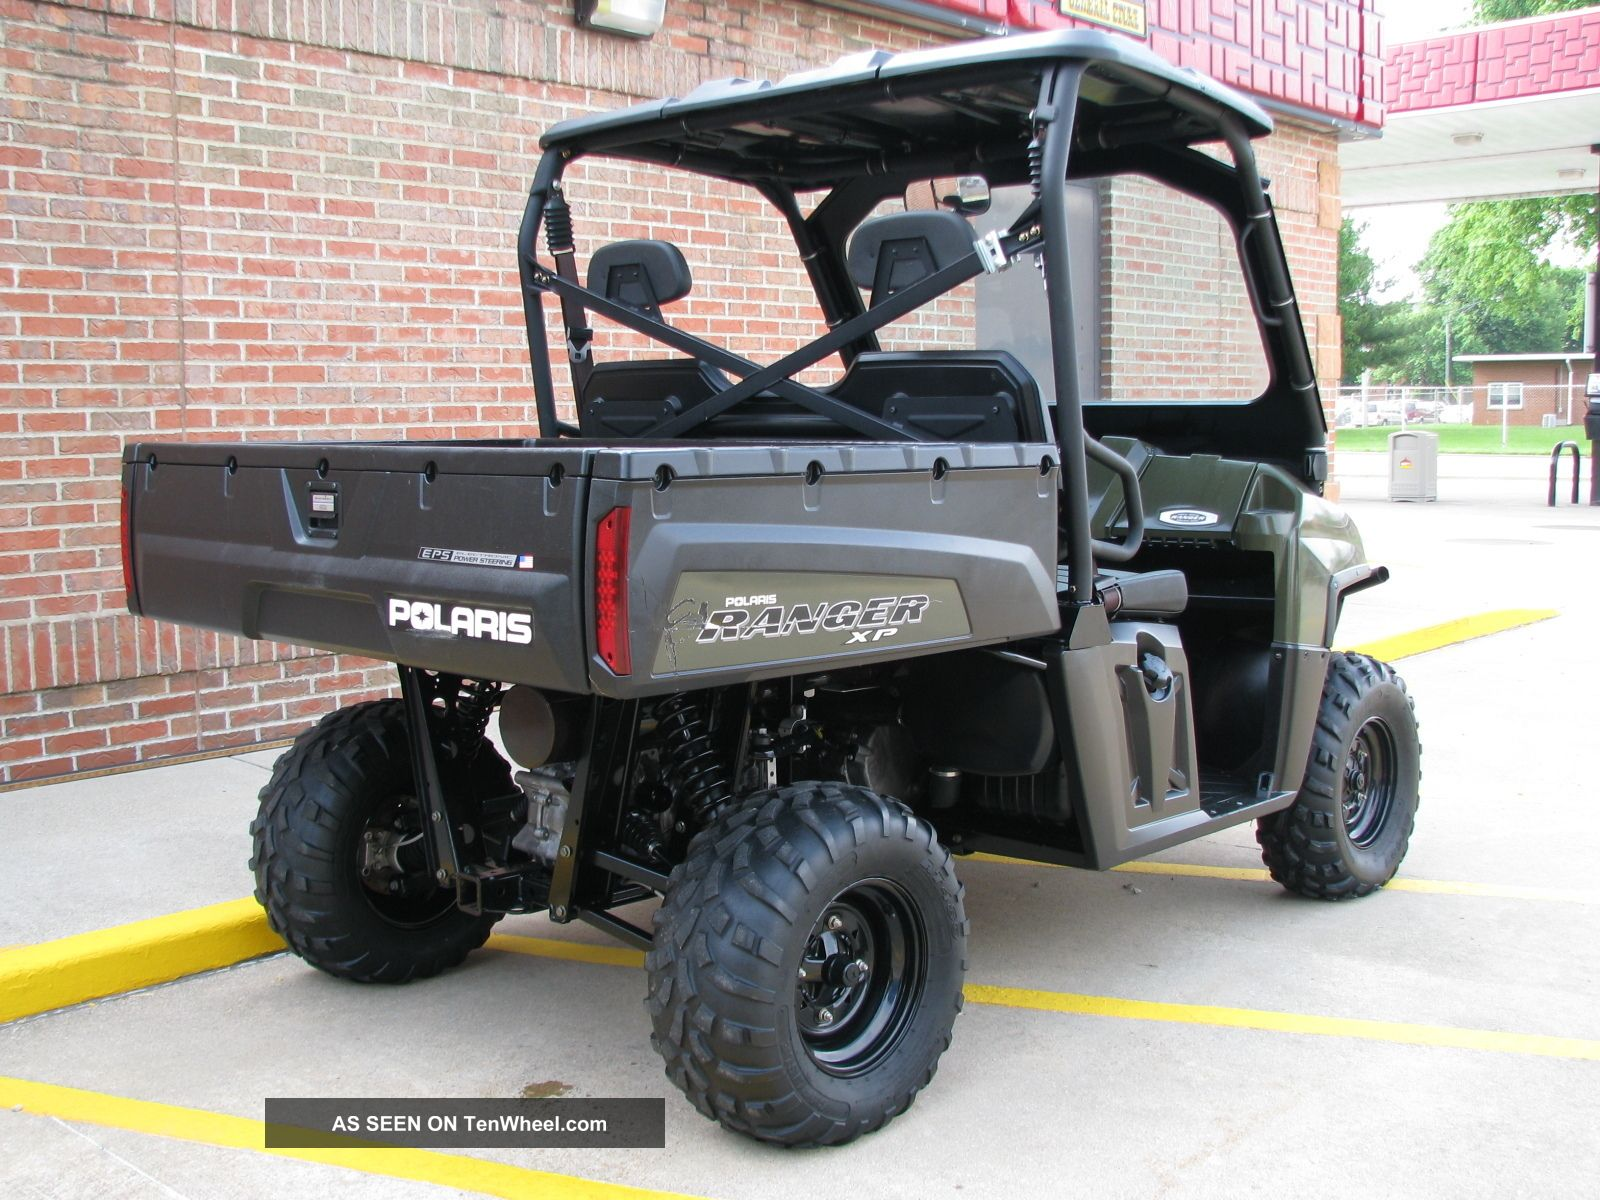 2011 Polaris Ranger Xp 800 W Eps